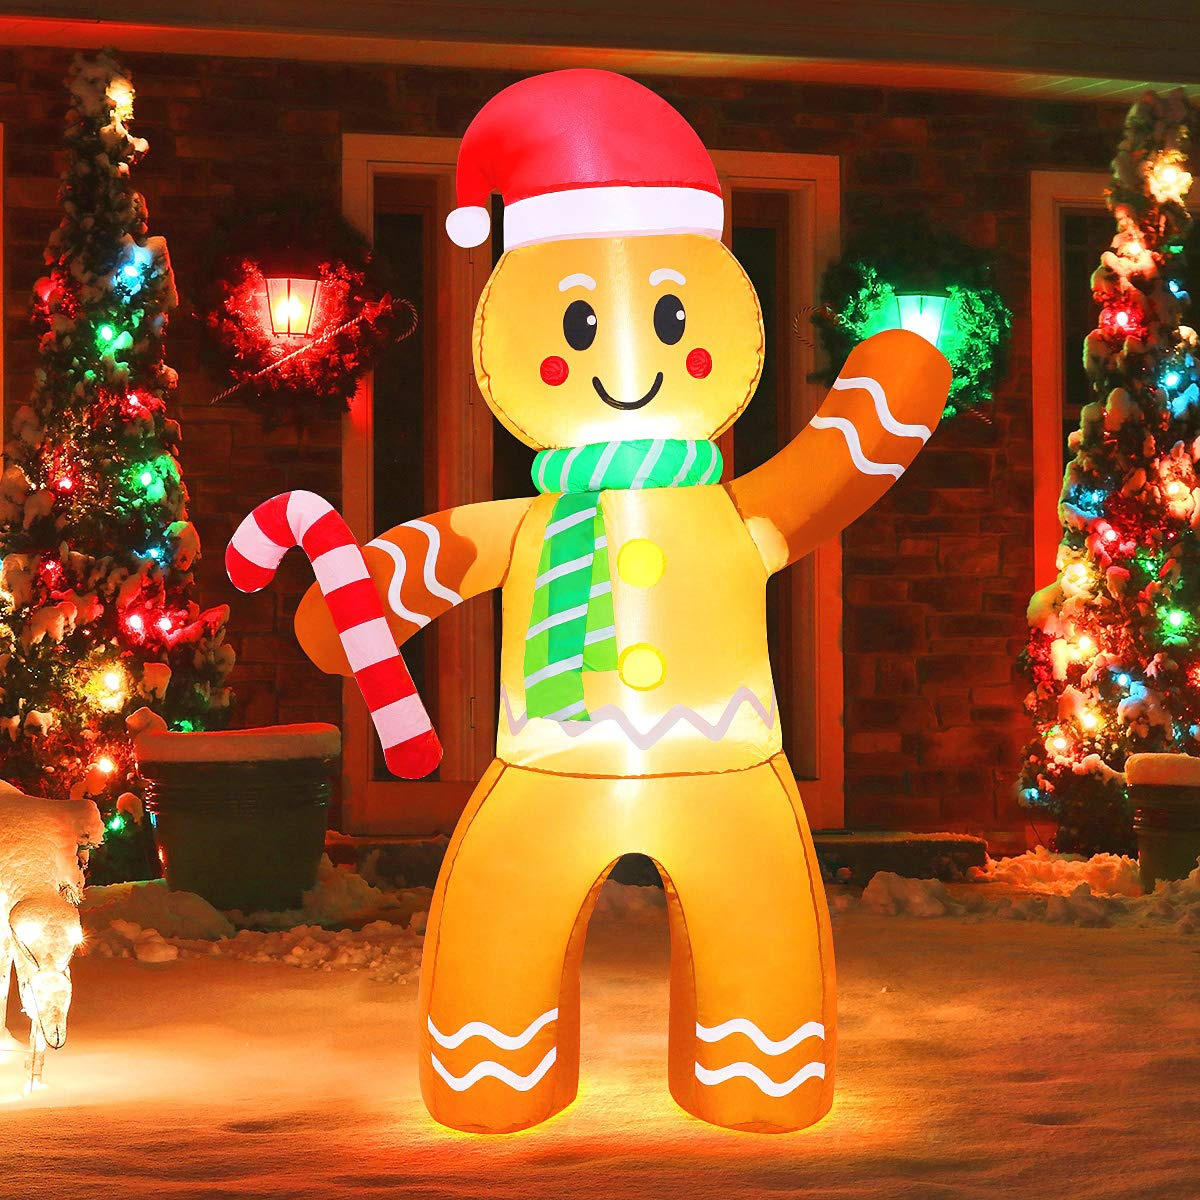 Maoyue Christmas Inflatables 5ft Christmas Decorations Outdoor Christmas Gingerbread Man Blow Up Christmas Decorations Built In Led Lights With Tethers Stakes For Outdoor Yard Lawn Amazon Com Au Lawn Garden